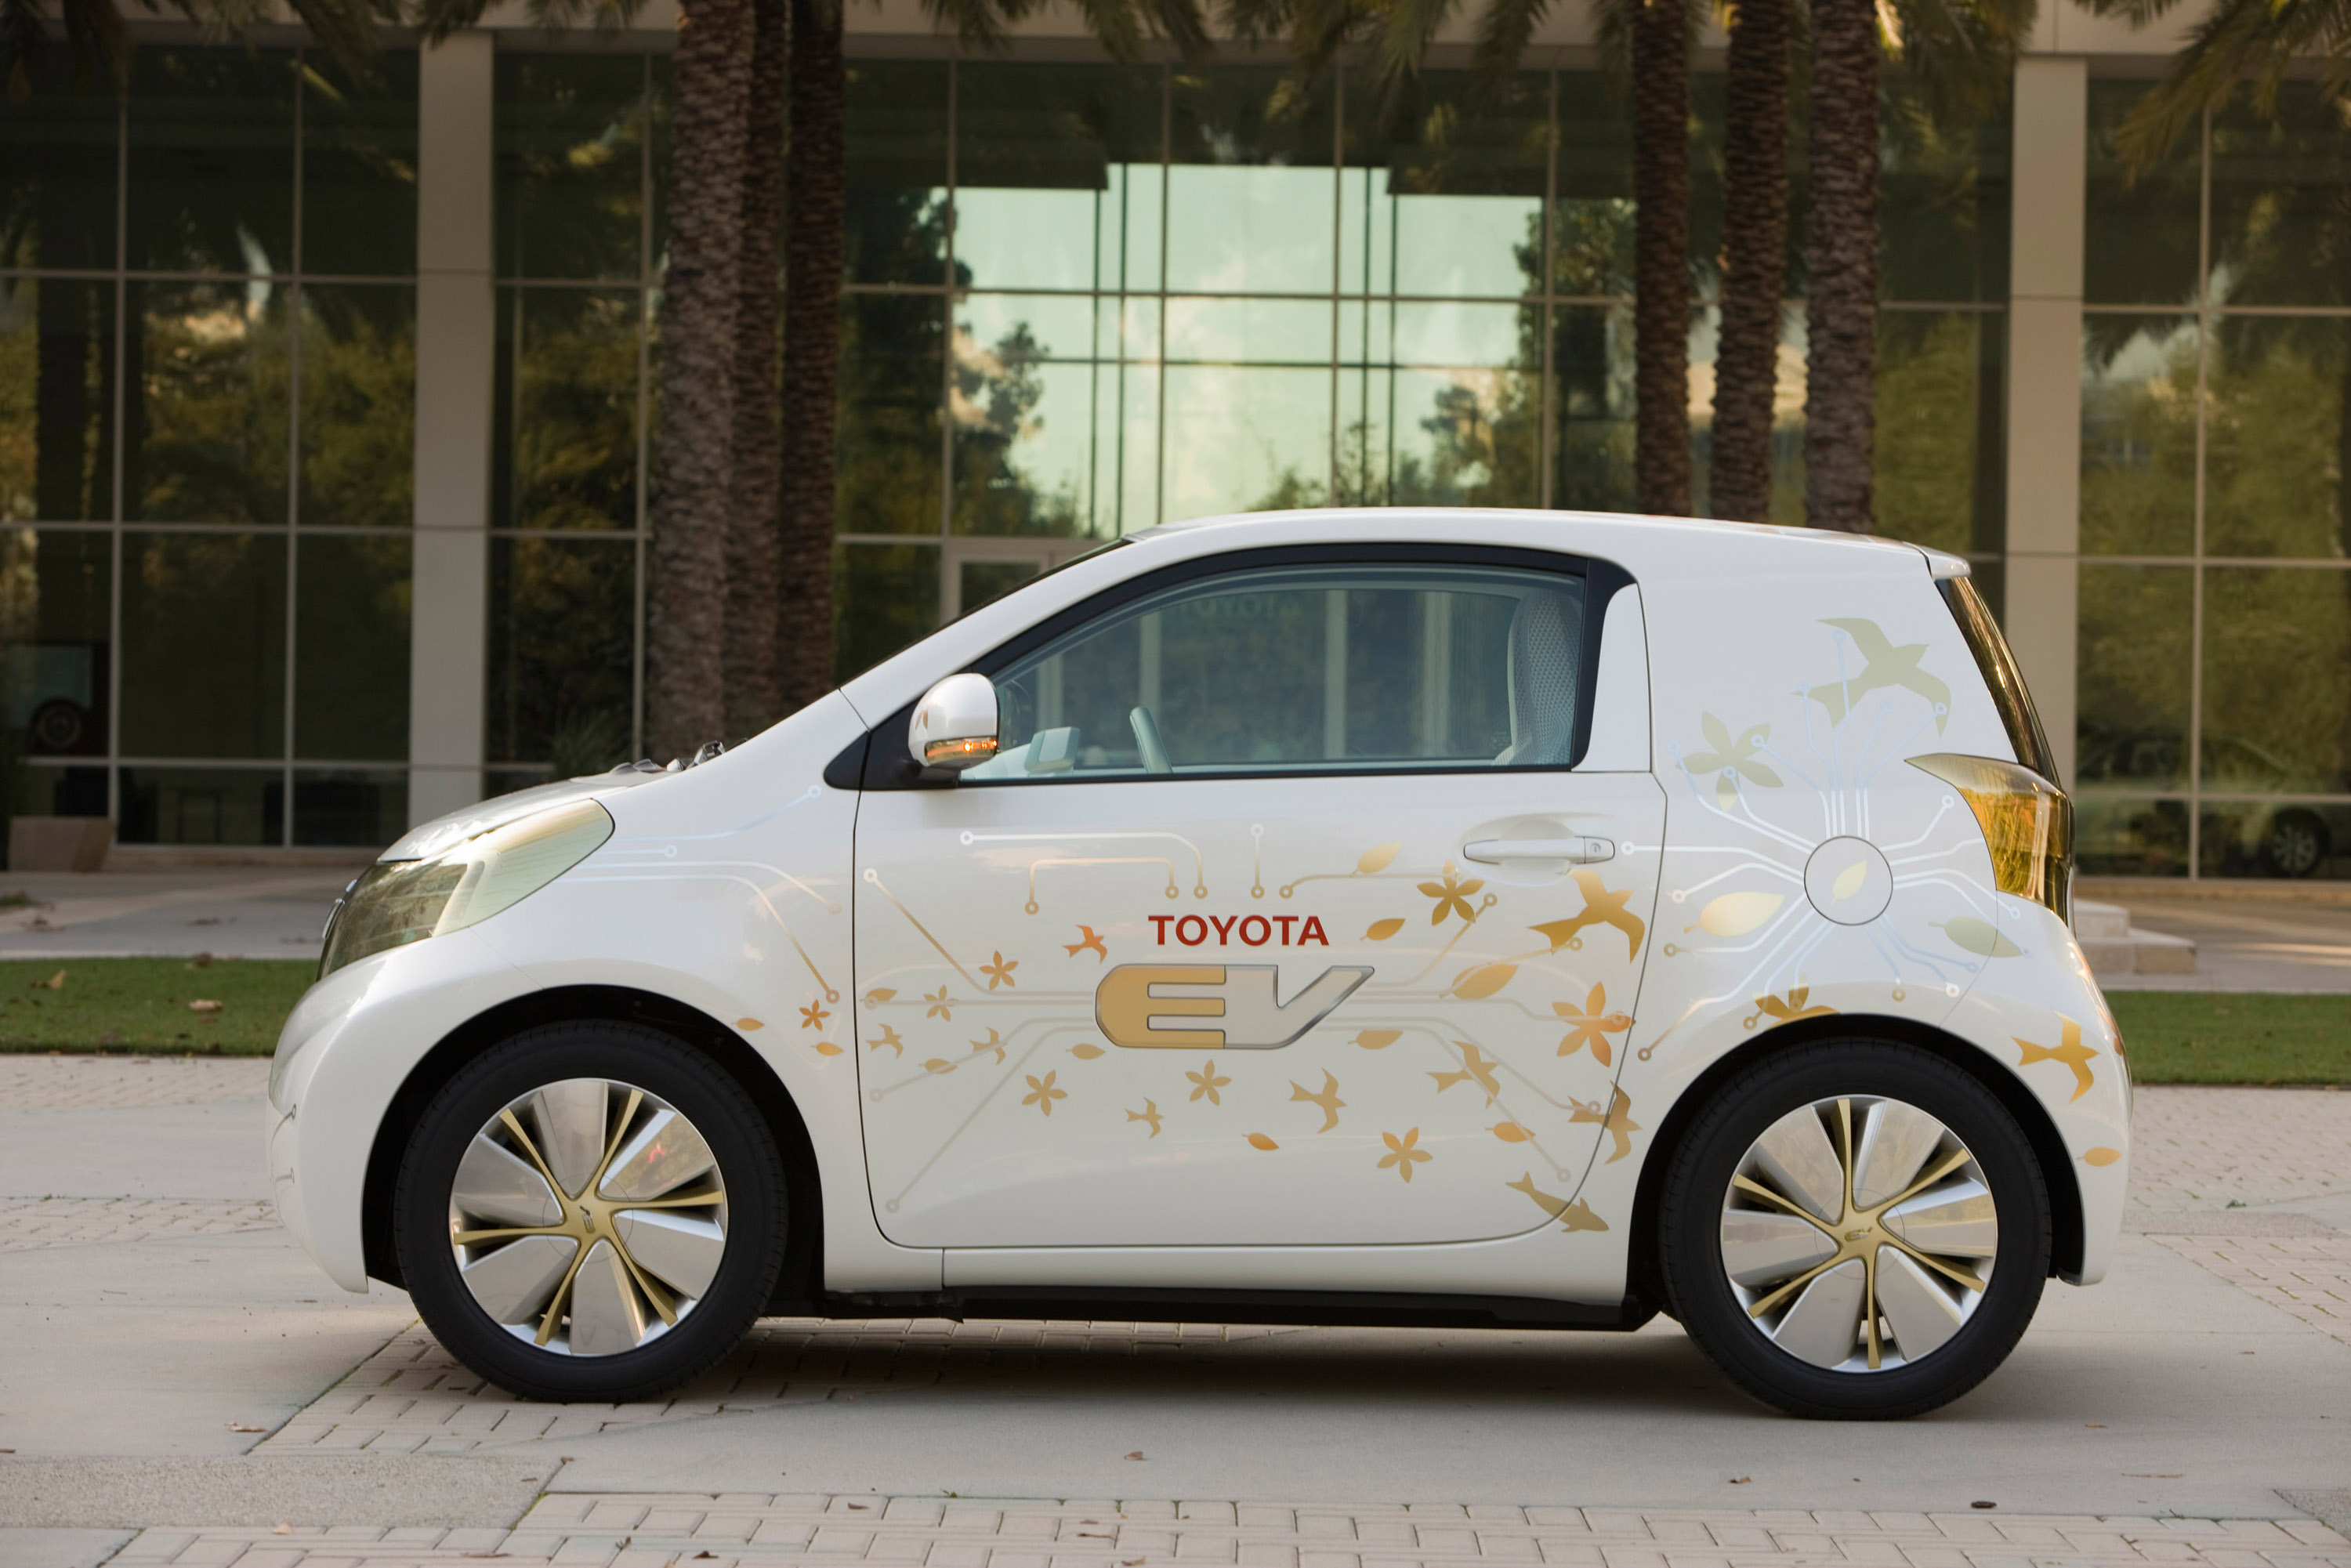 Toyota Ev Concept Confirms Battery Electric Vehicle In 2012